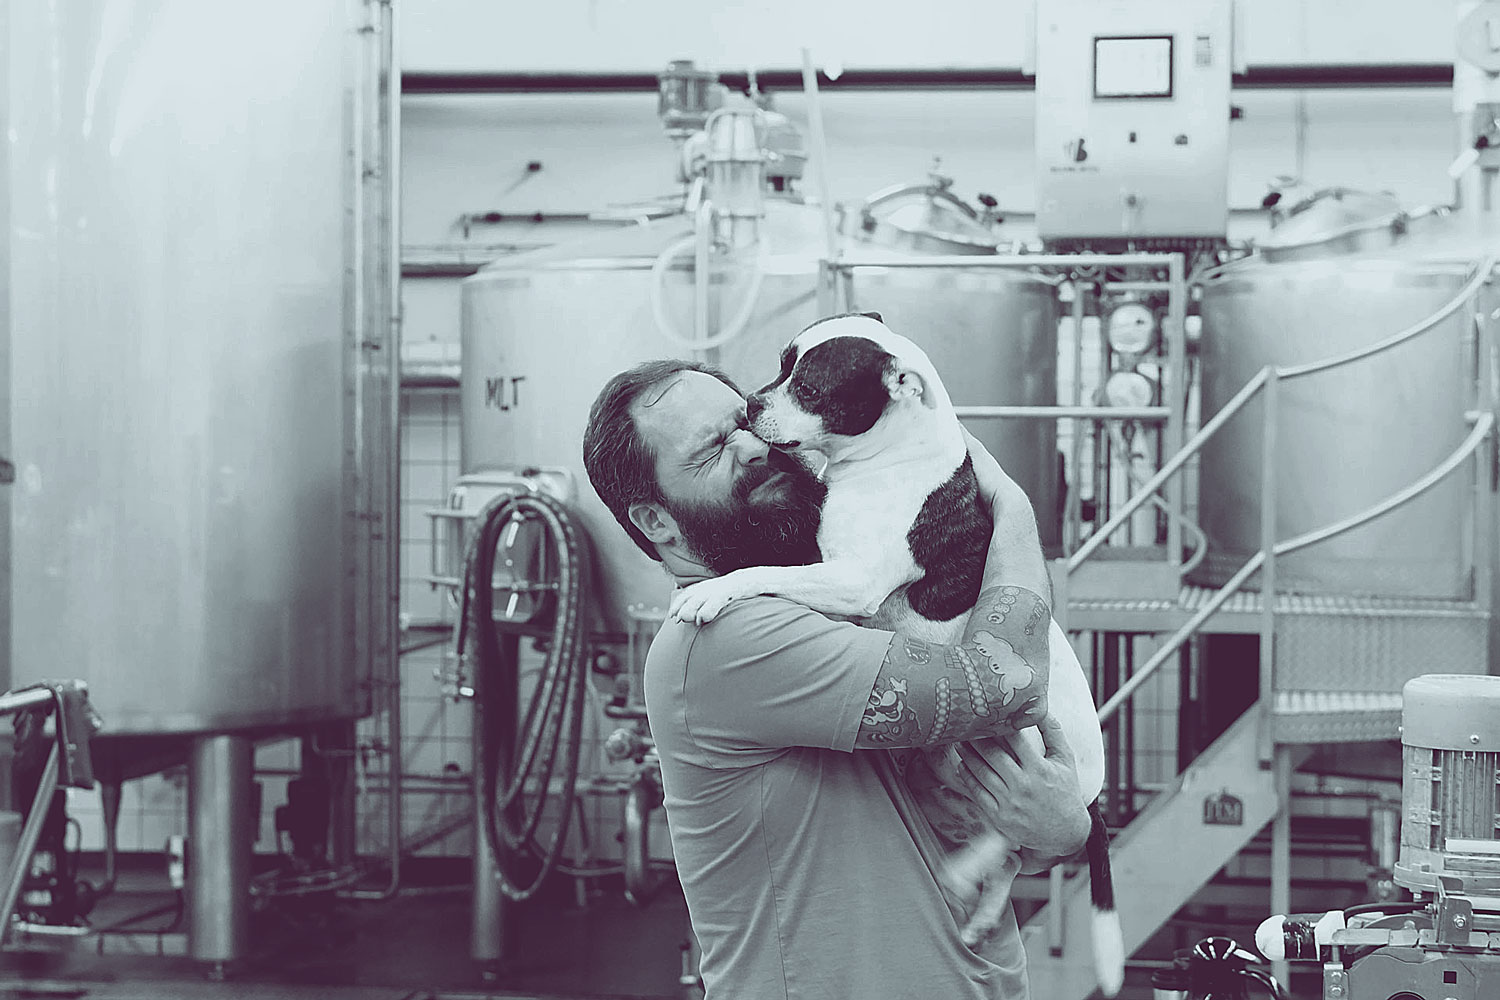 Magnus Svensson from Benchwarmer's Brewing hugging Cookie, one of the dogs at Beerbliotek Brewery.